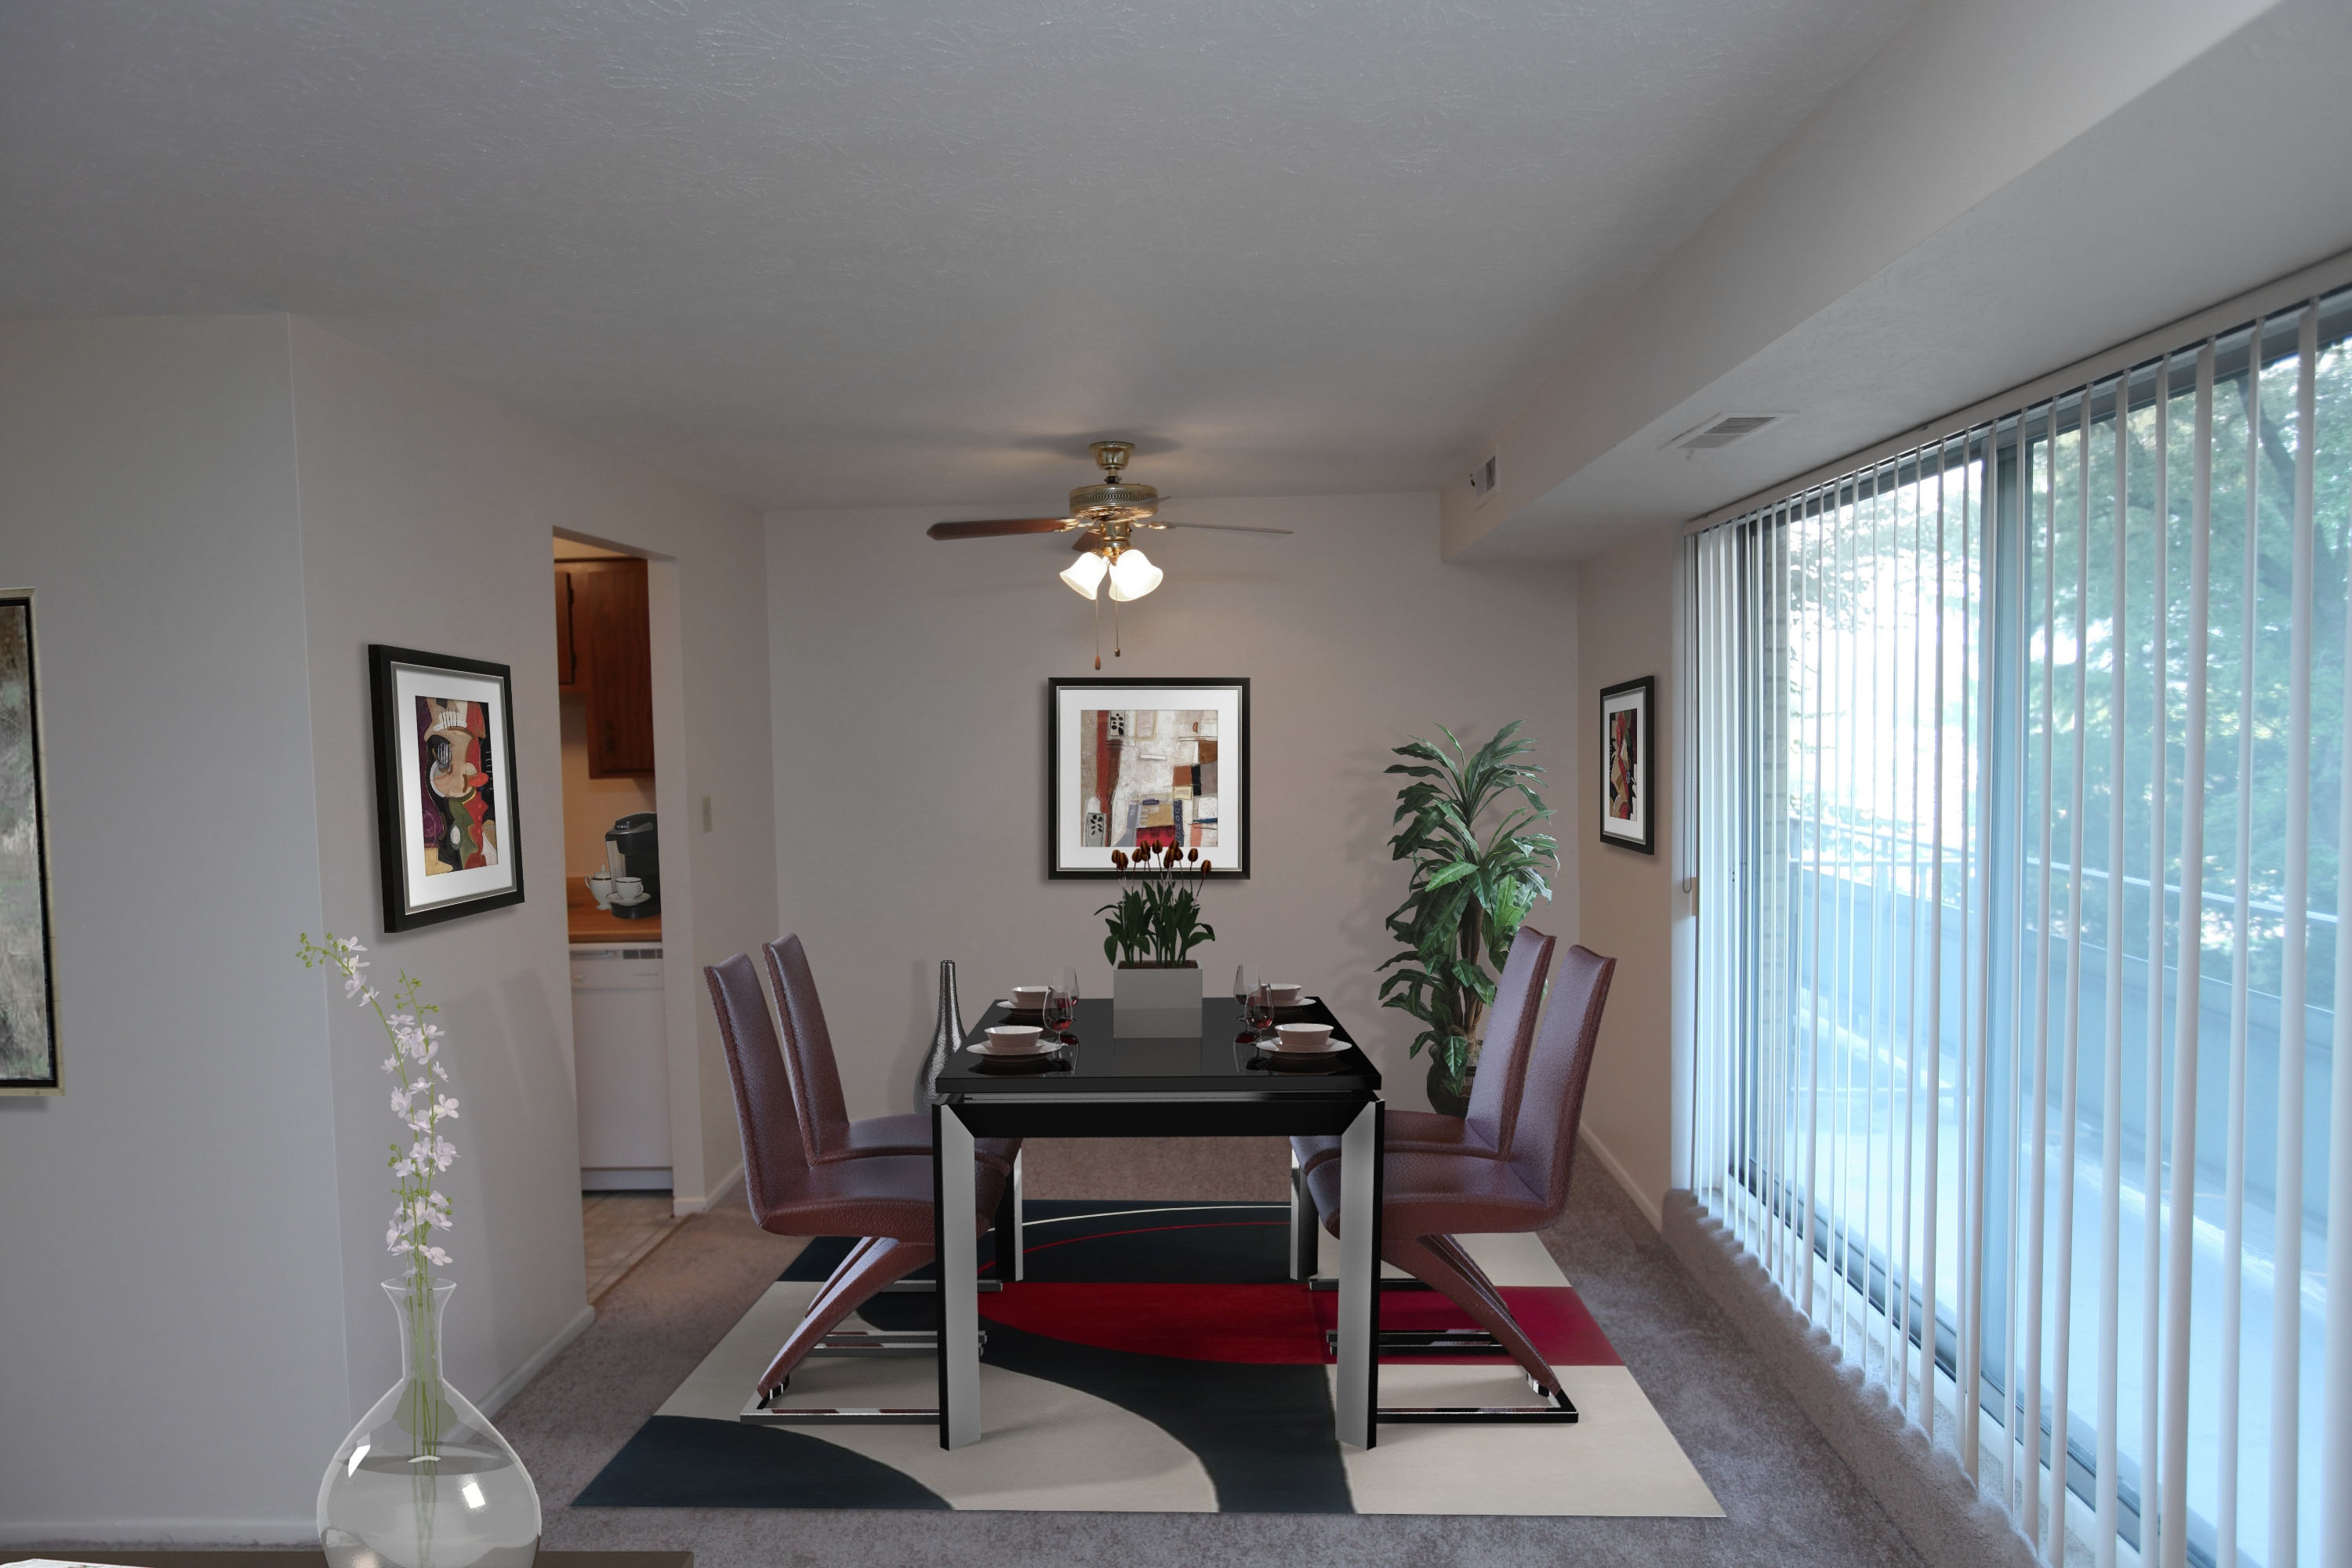 1B Dining Room Furnished at the Greenridge on Euclid Apartments in Euclid, OH